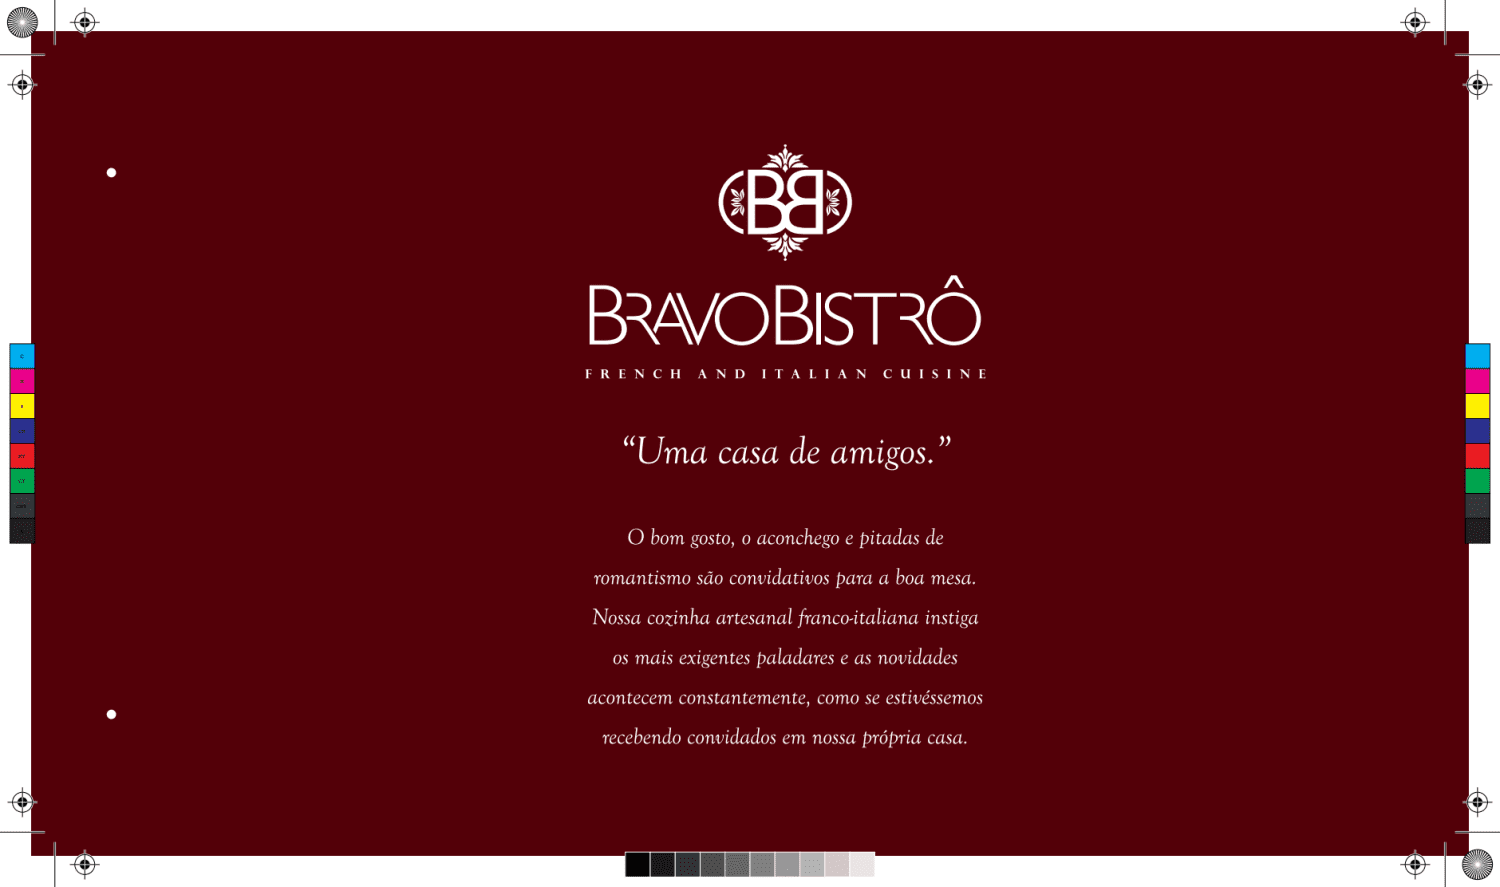 Menu do restaurante Bravo Bistro  - Página 1